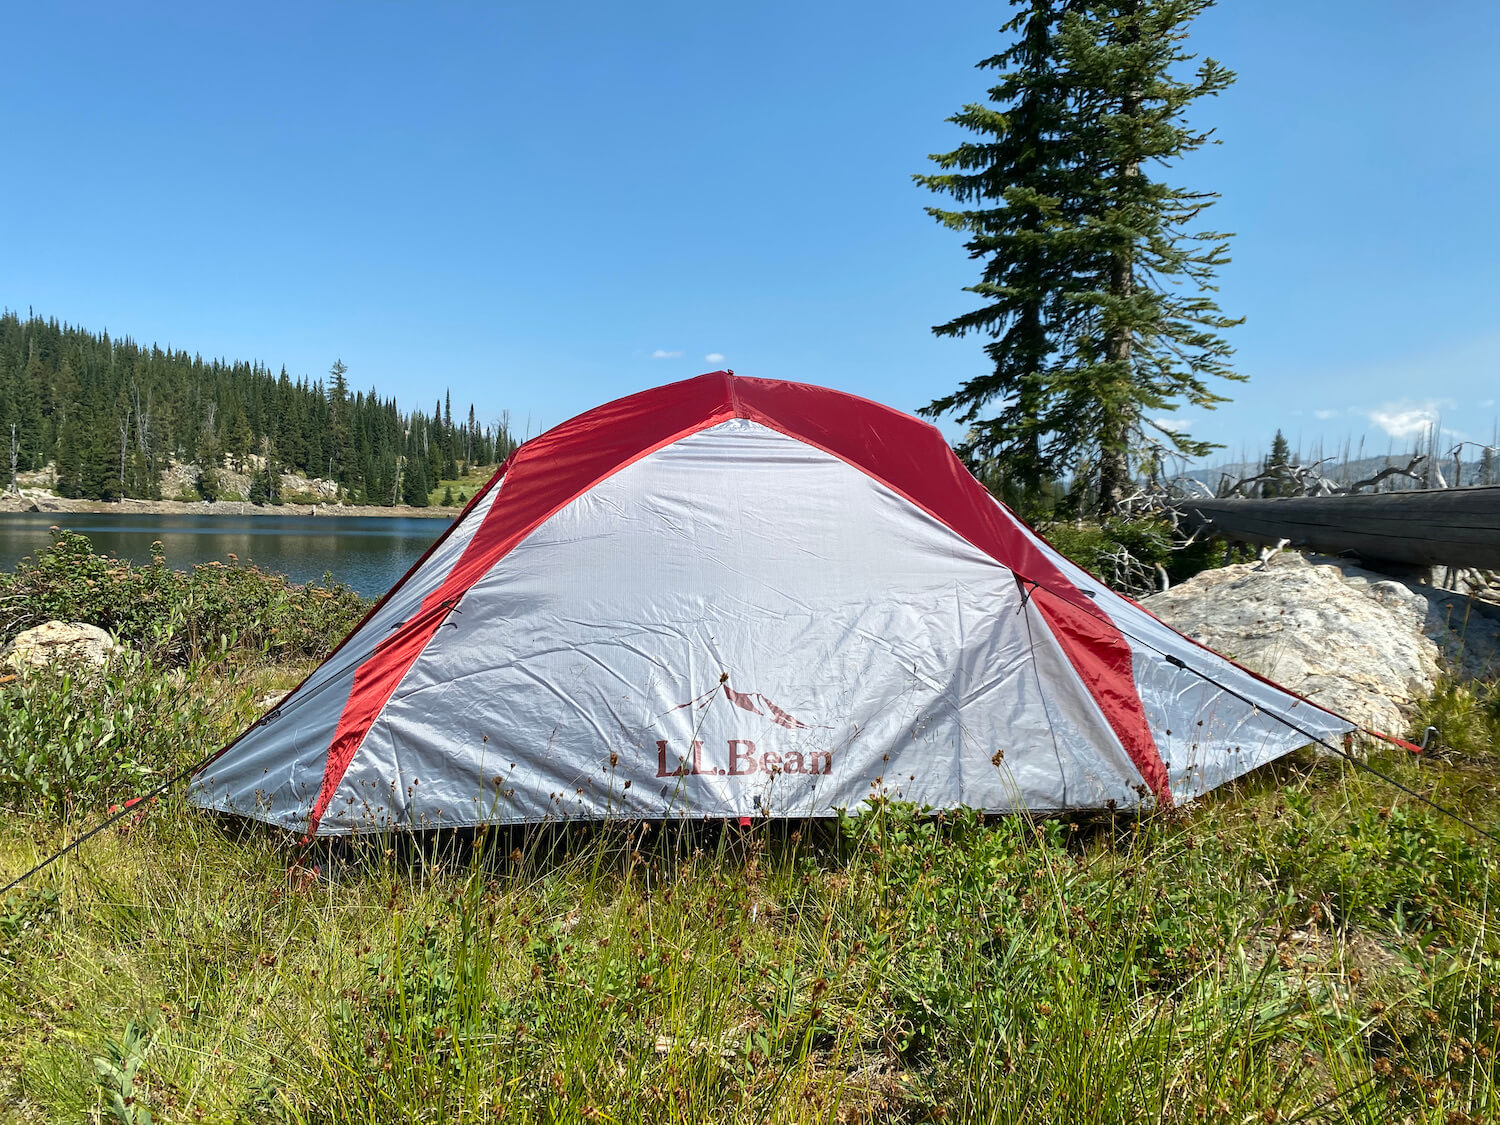 This review photo shows the L.L.Bean Mountain Light HV 3 Tent set up near a backcountry mountain lake during testing.